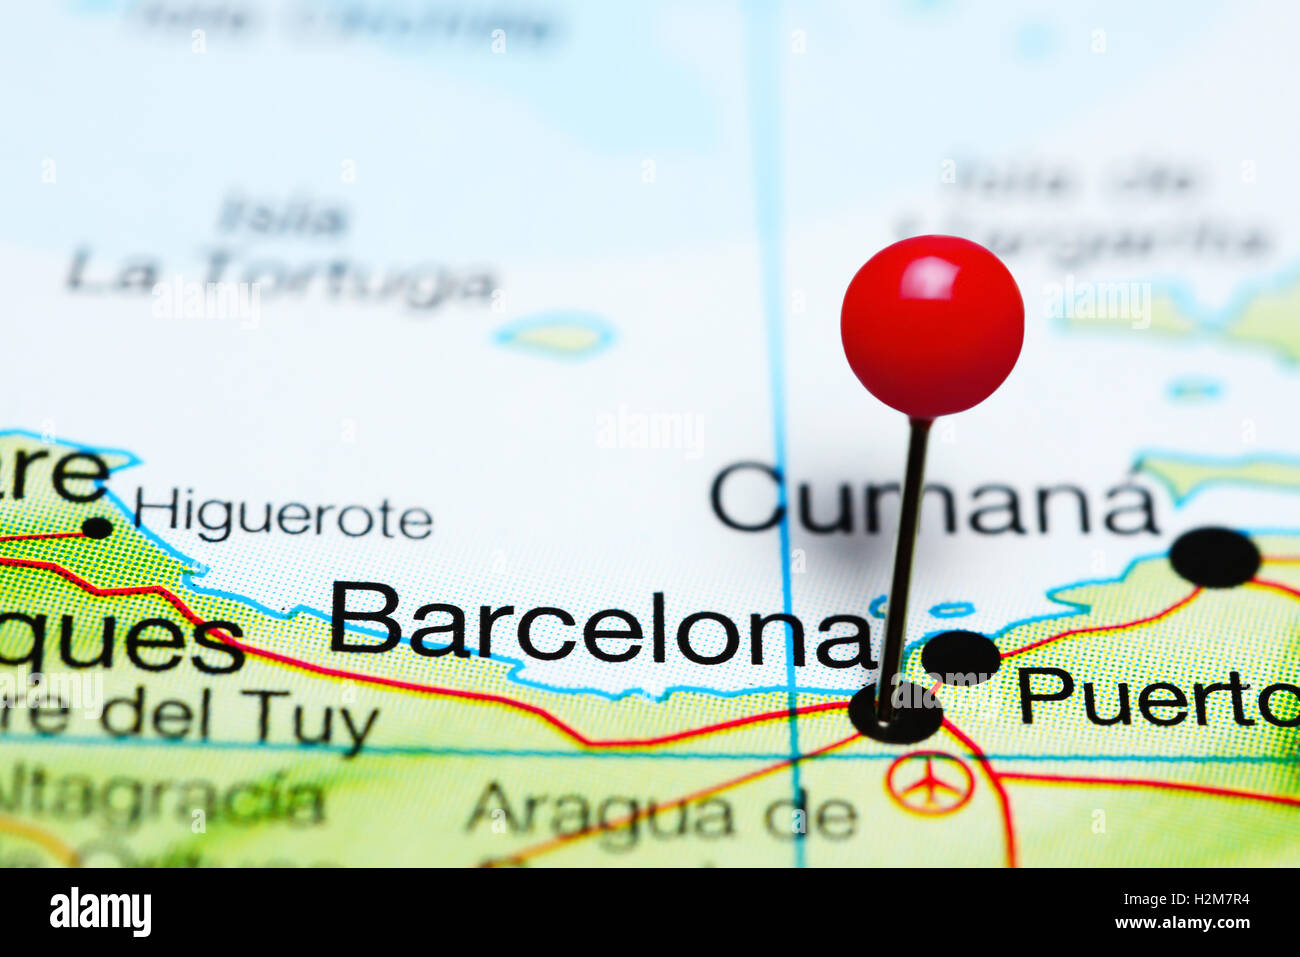 Barcelona pinned on a map of Venezuela Stock Photo Royalty Free